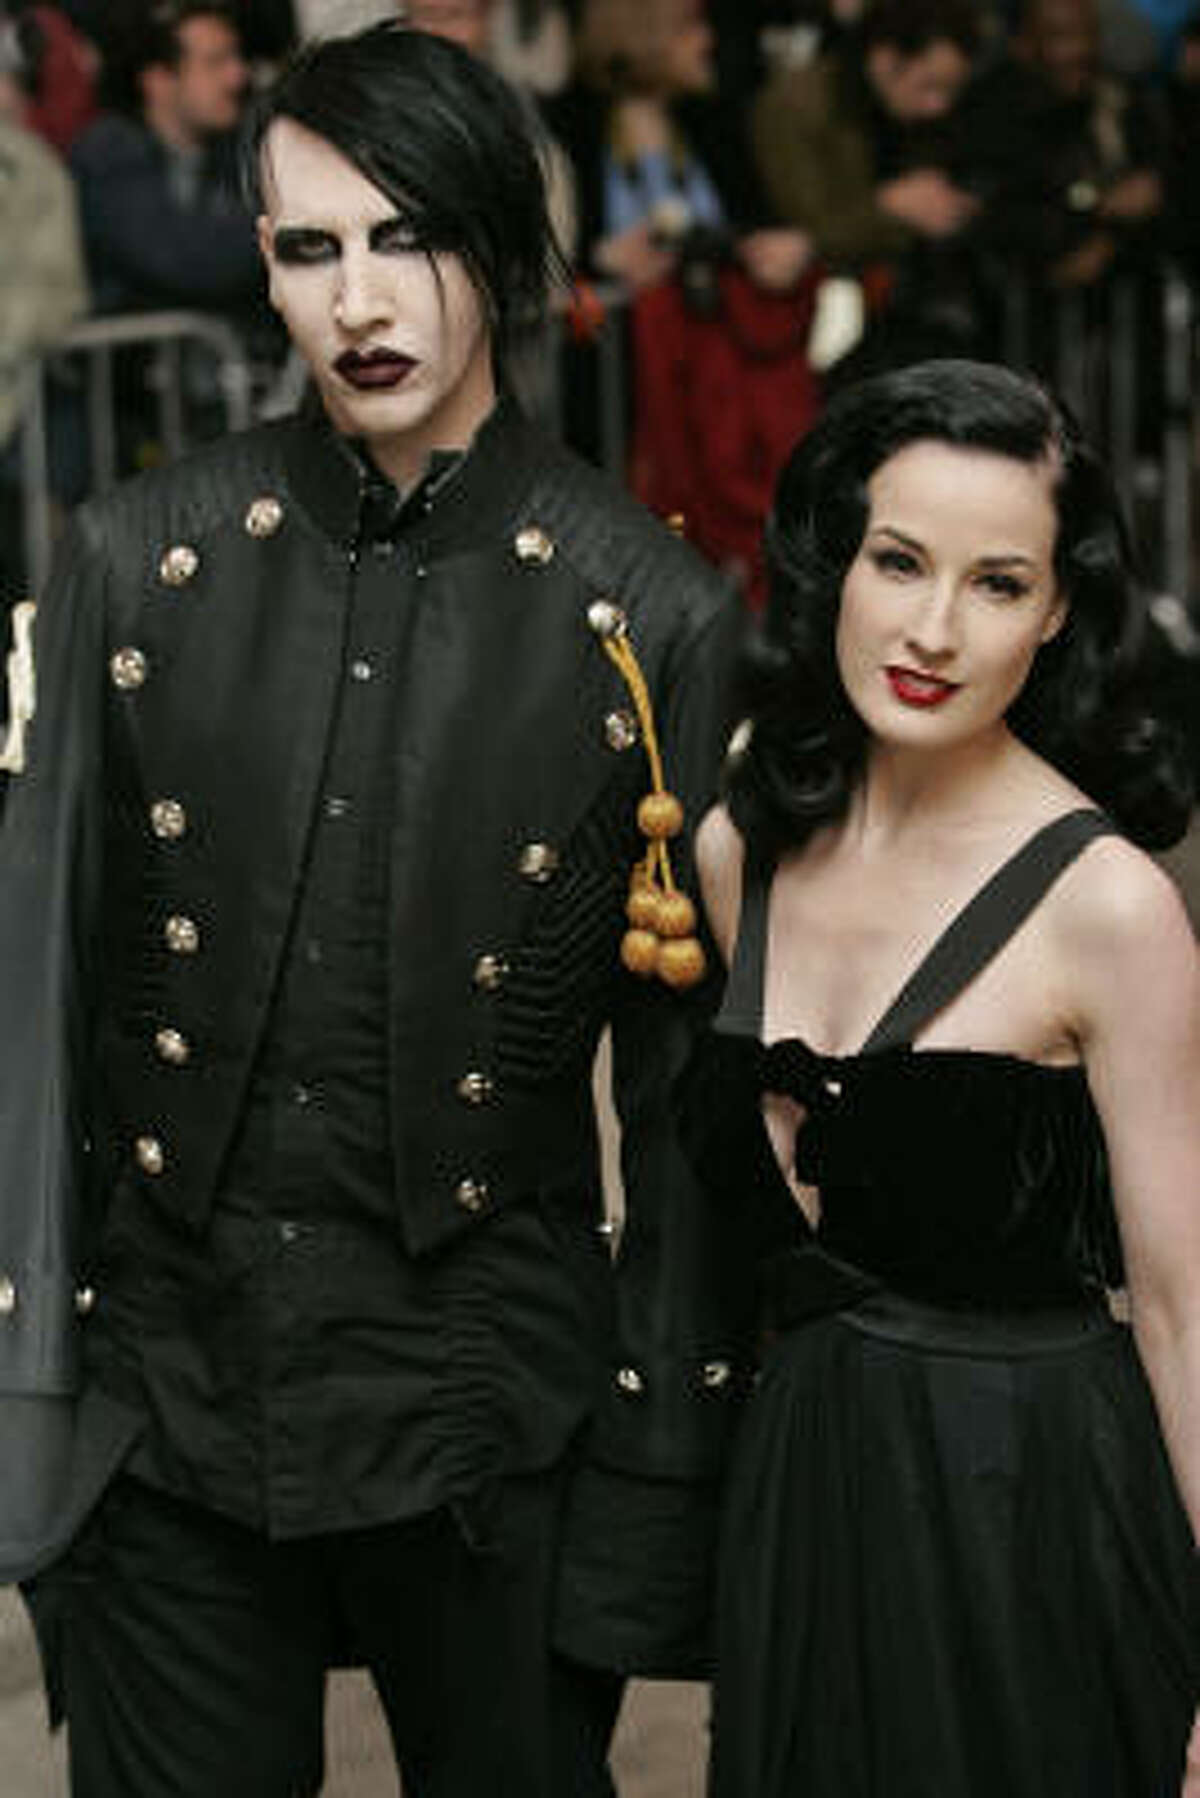 Marilyn Manson and Dita von Teese arrive at the Costume Institute Gala held at the Metropolitan Museum of Art in New York on May 2, 2005.